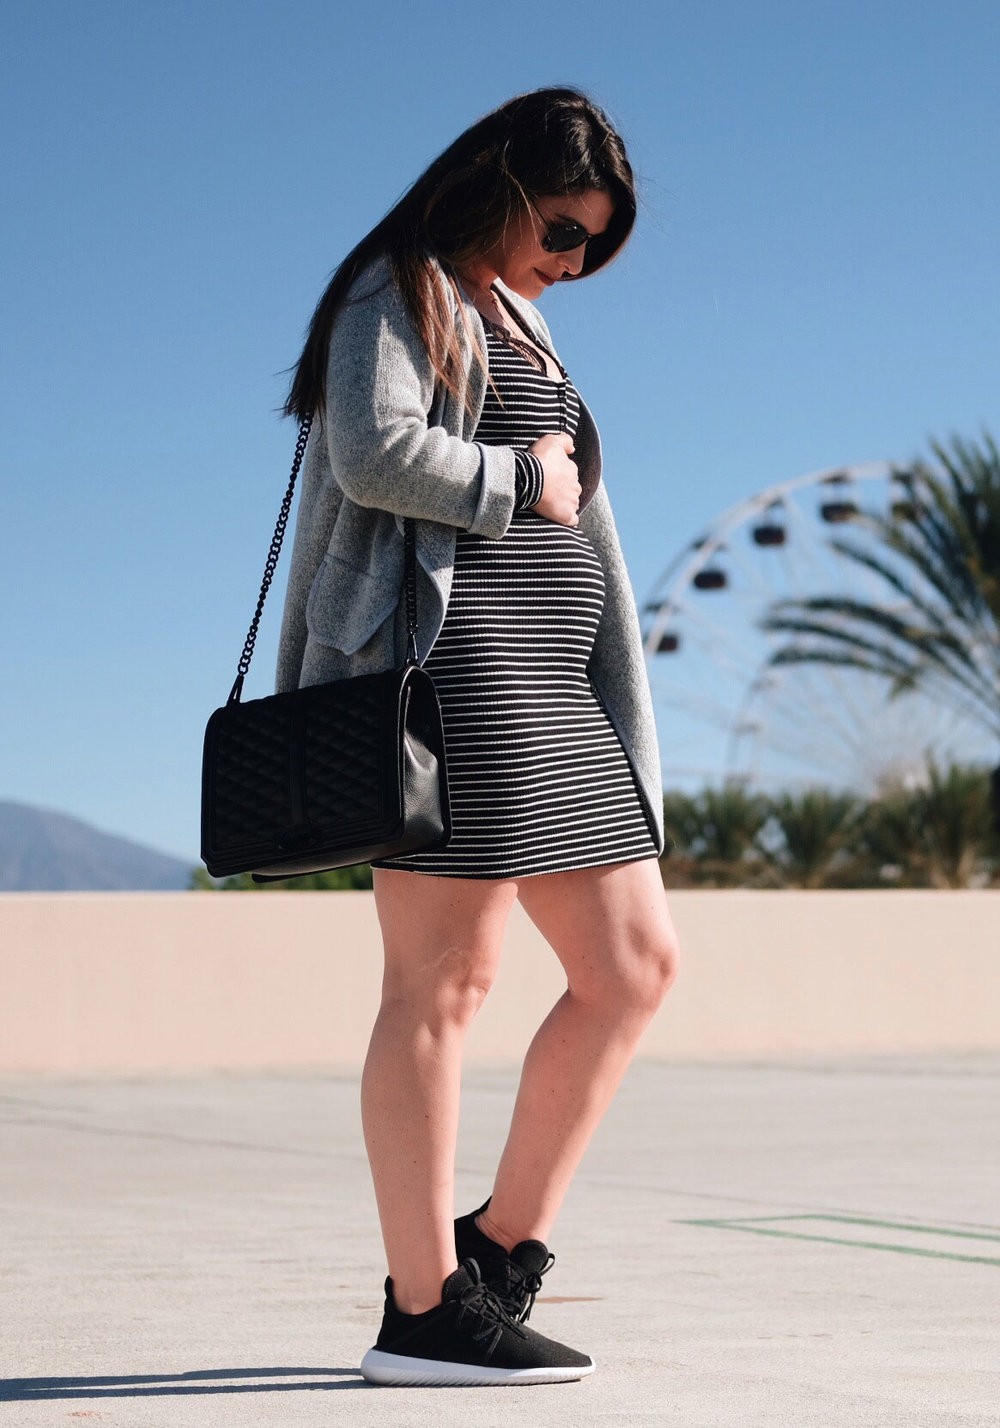 Second trimester maternity outfit.  Bodycon dress with cardigan, sneakers, and Rebecca Minkoff jumbo love crossbody bag.